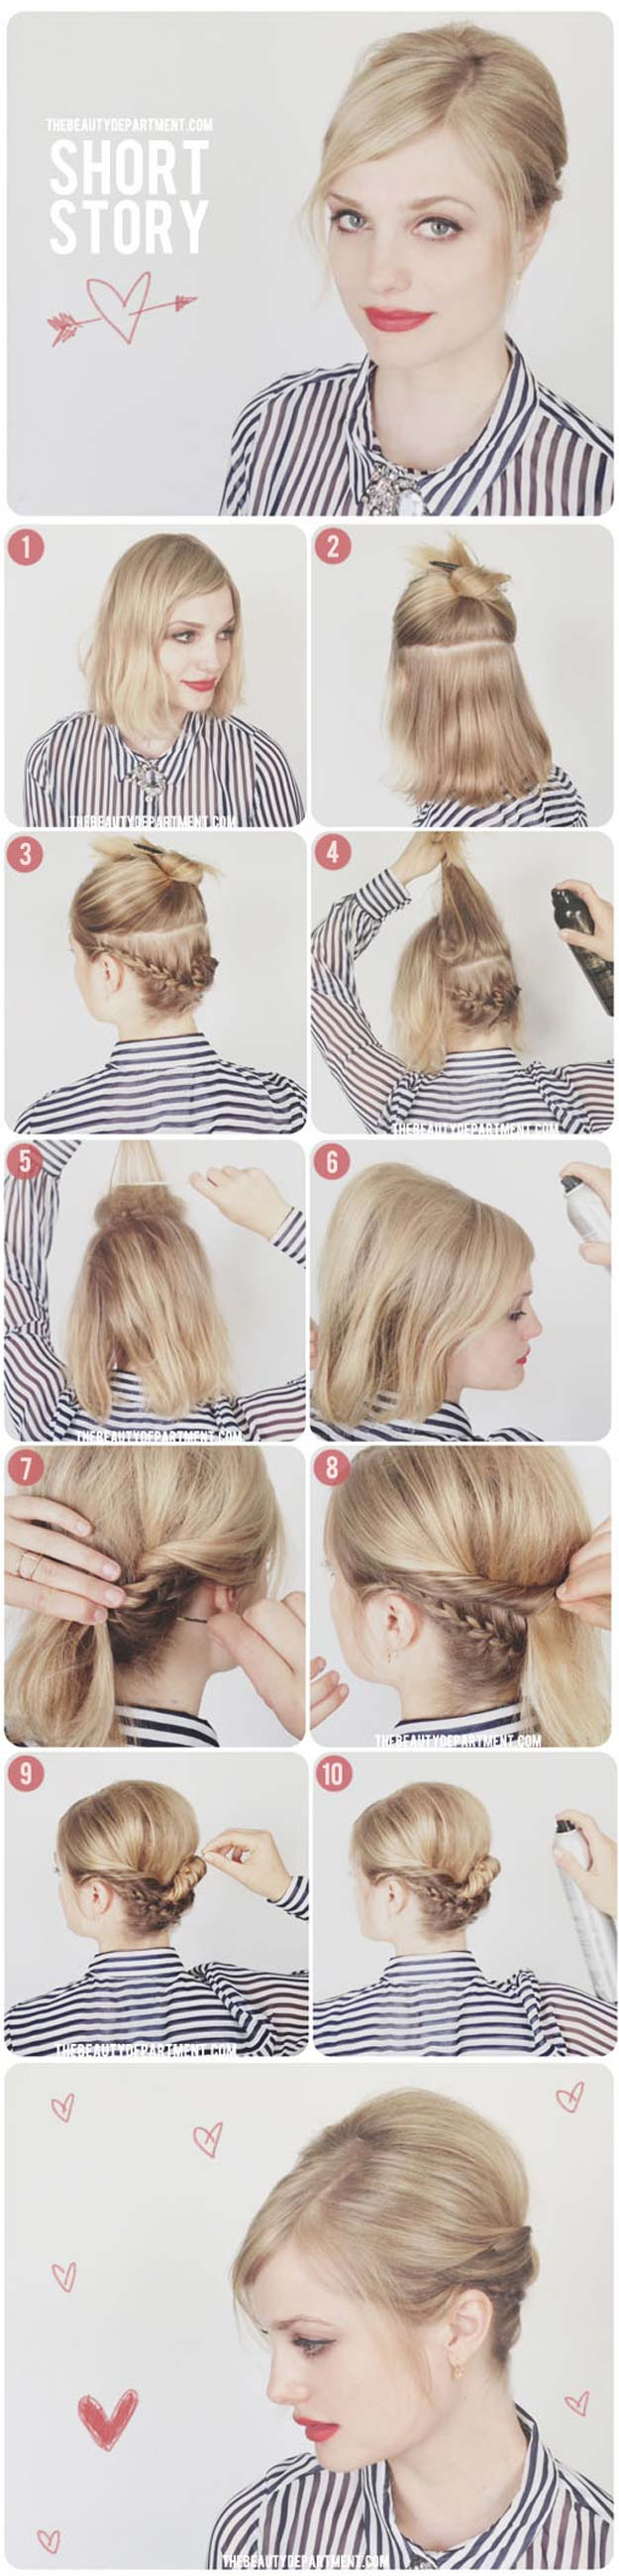 Creative DIY Hair Tutorials - The Under Braider - Color, Rainbow, Galaxy and Unique Styles for Long, Short and Medium Hair - Braids, Dyes, Instructions for Teens and Women #hairstyles #hairideas #beauty #teens #easyhairstyles